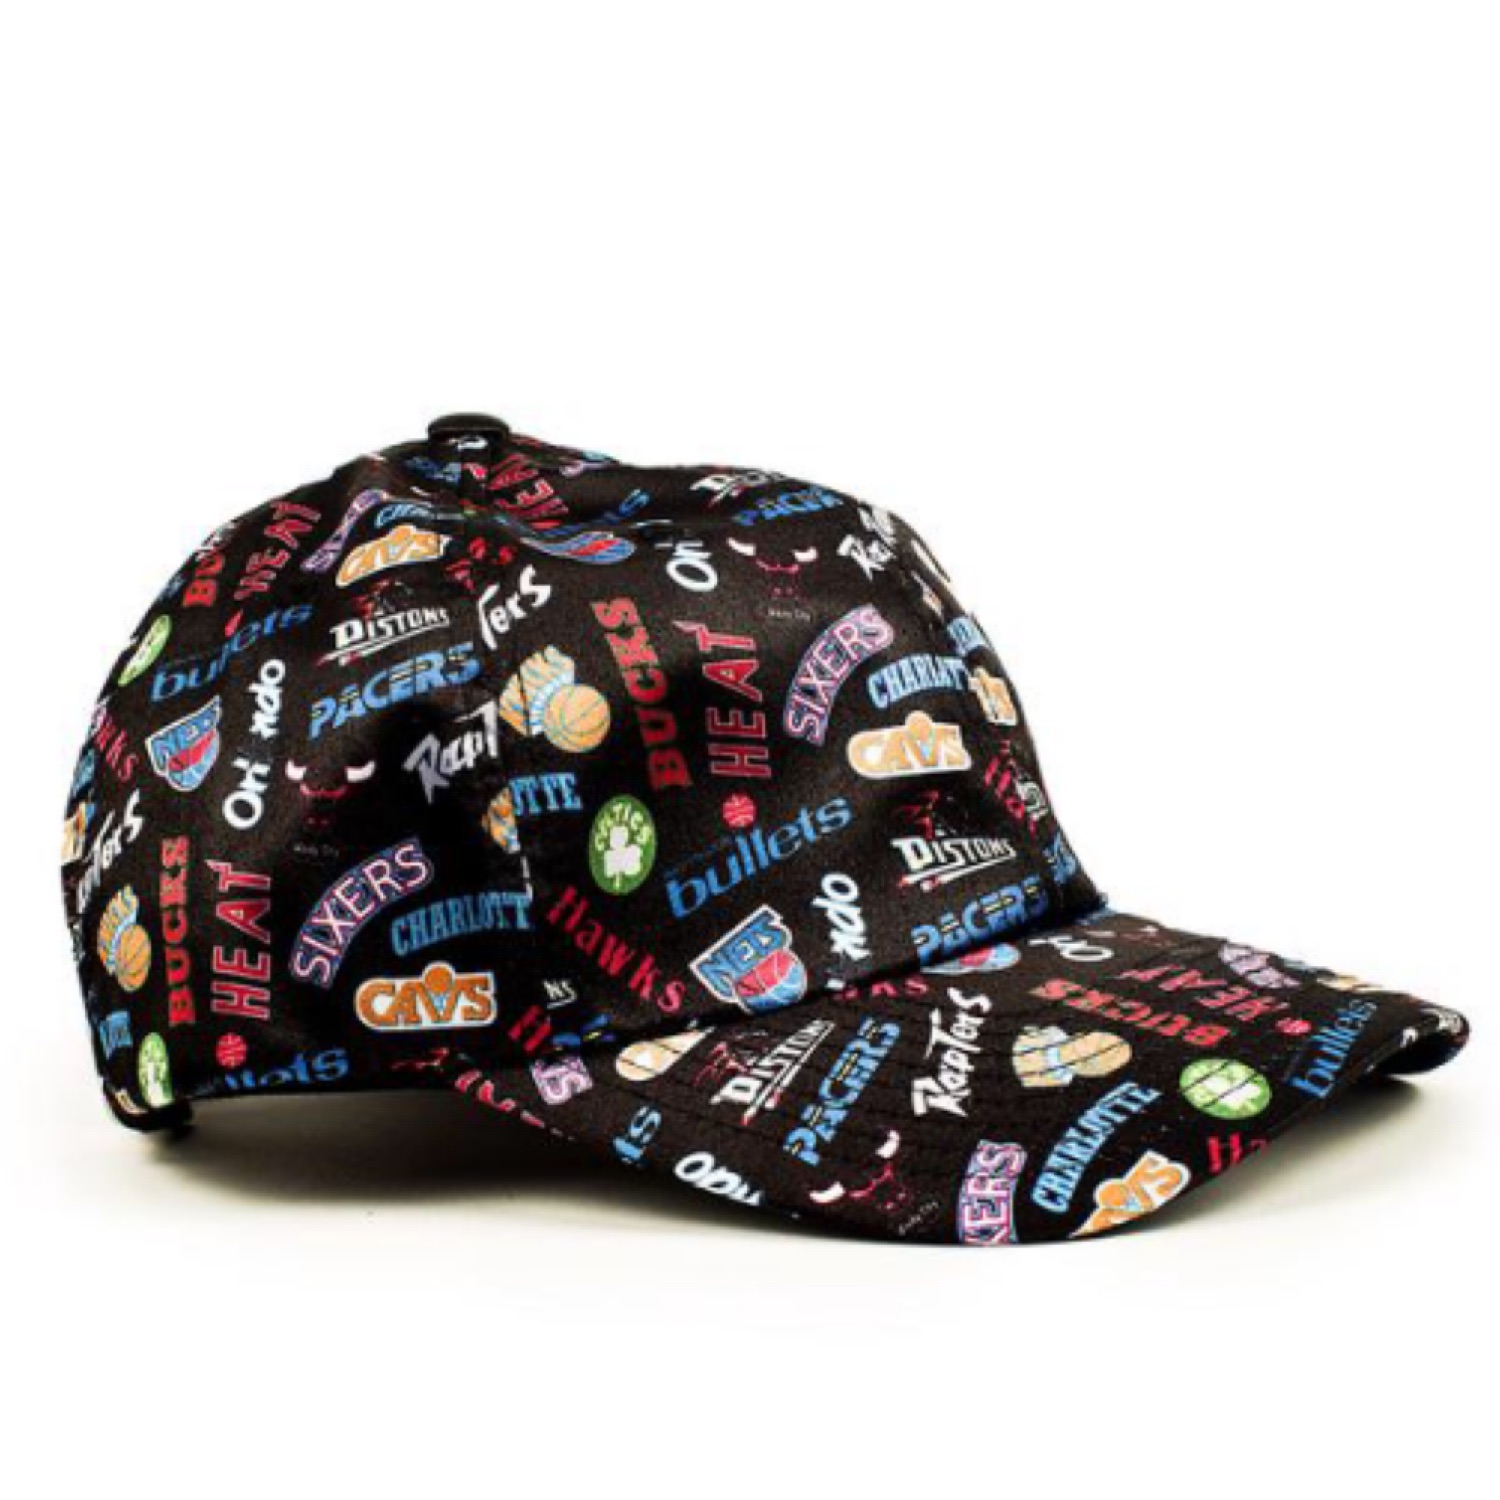 Mitchel & Ness Eastern Conference Team Hat